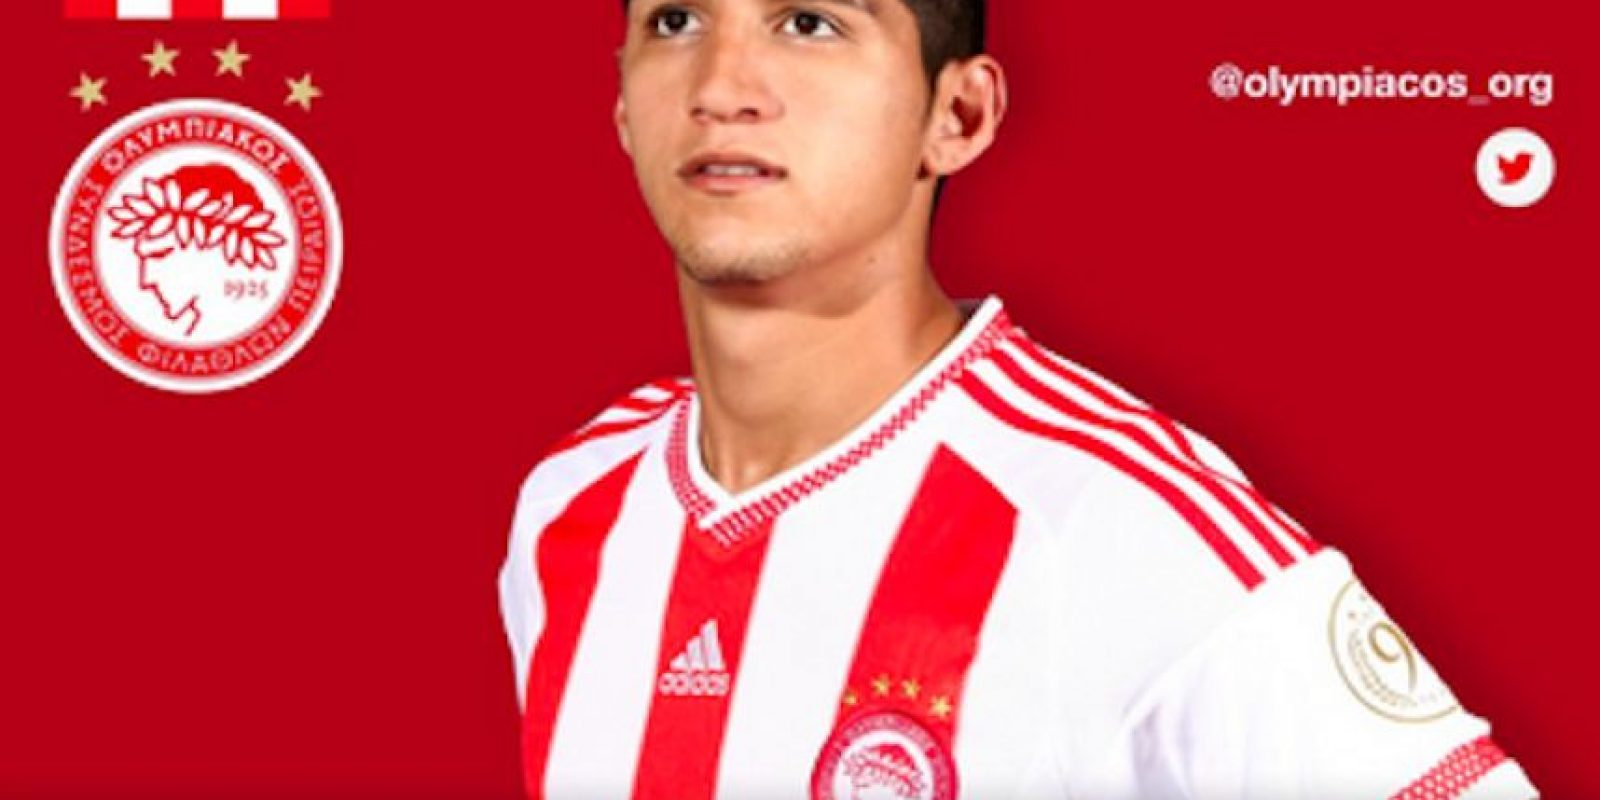 Foto:Twitter: @olympiacos_org